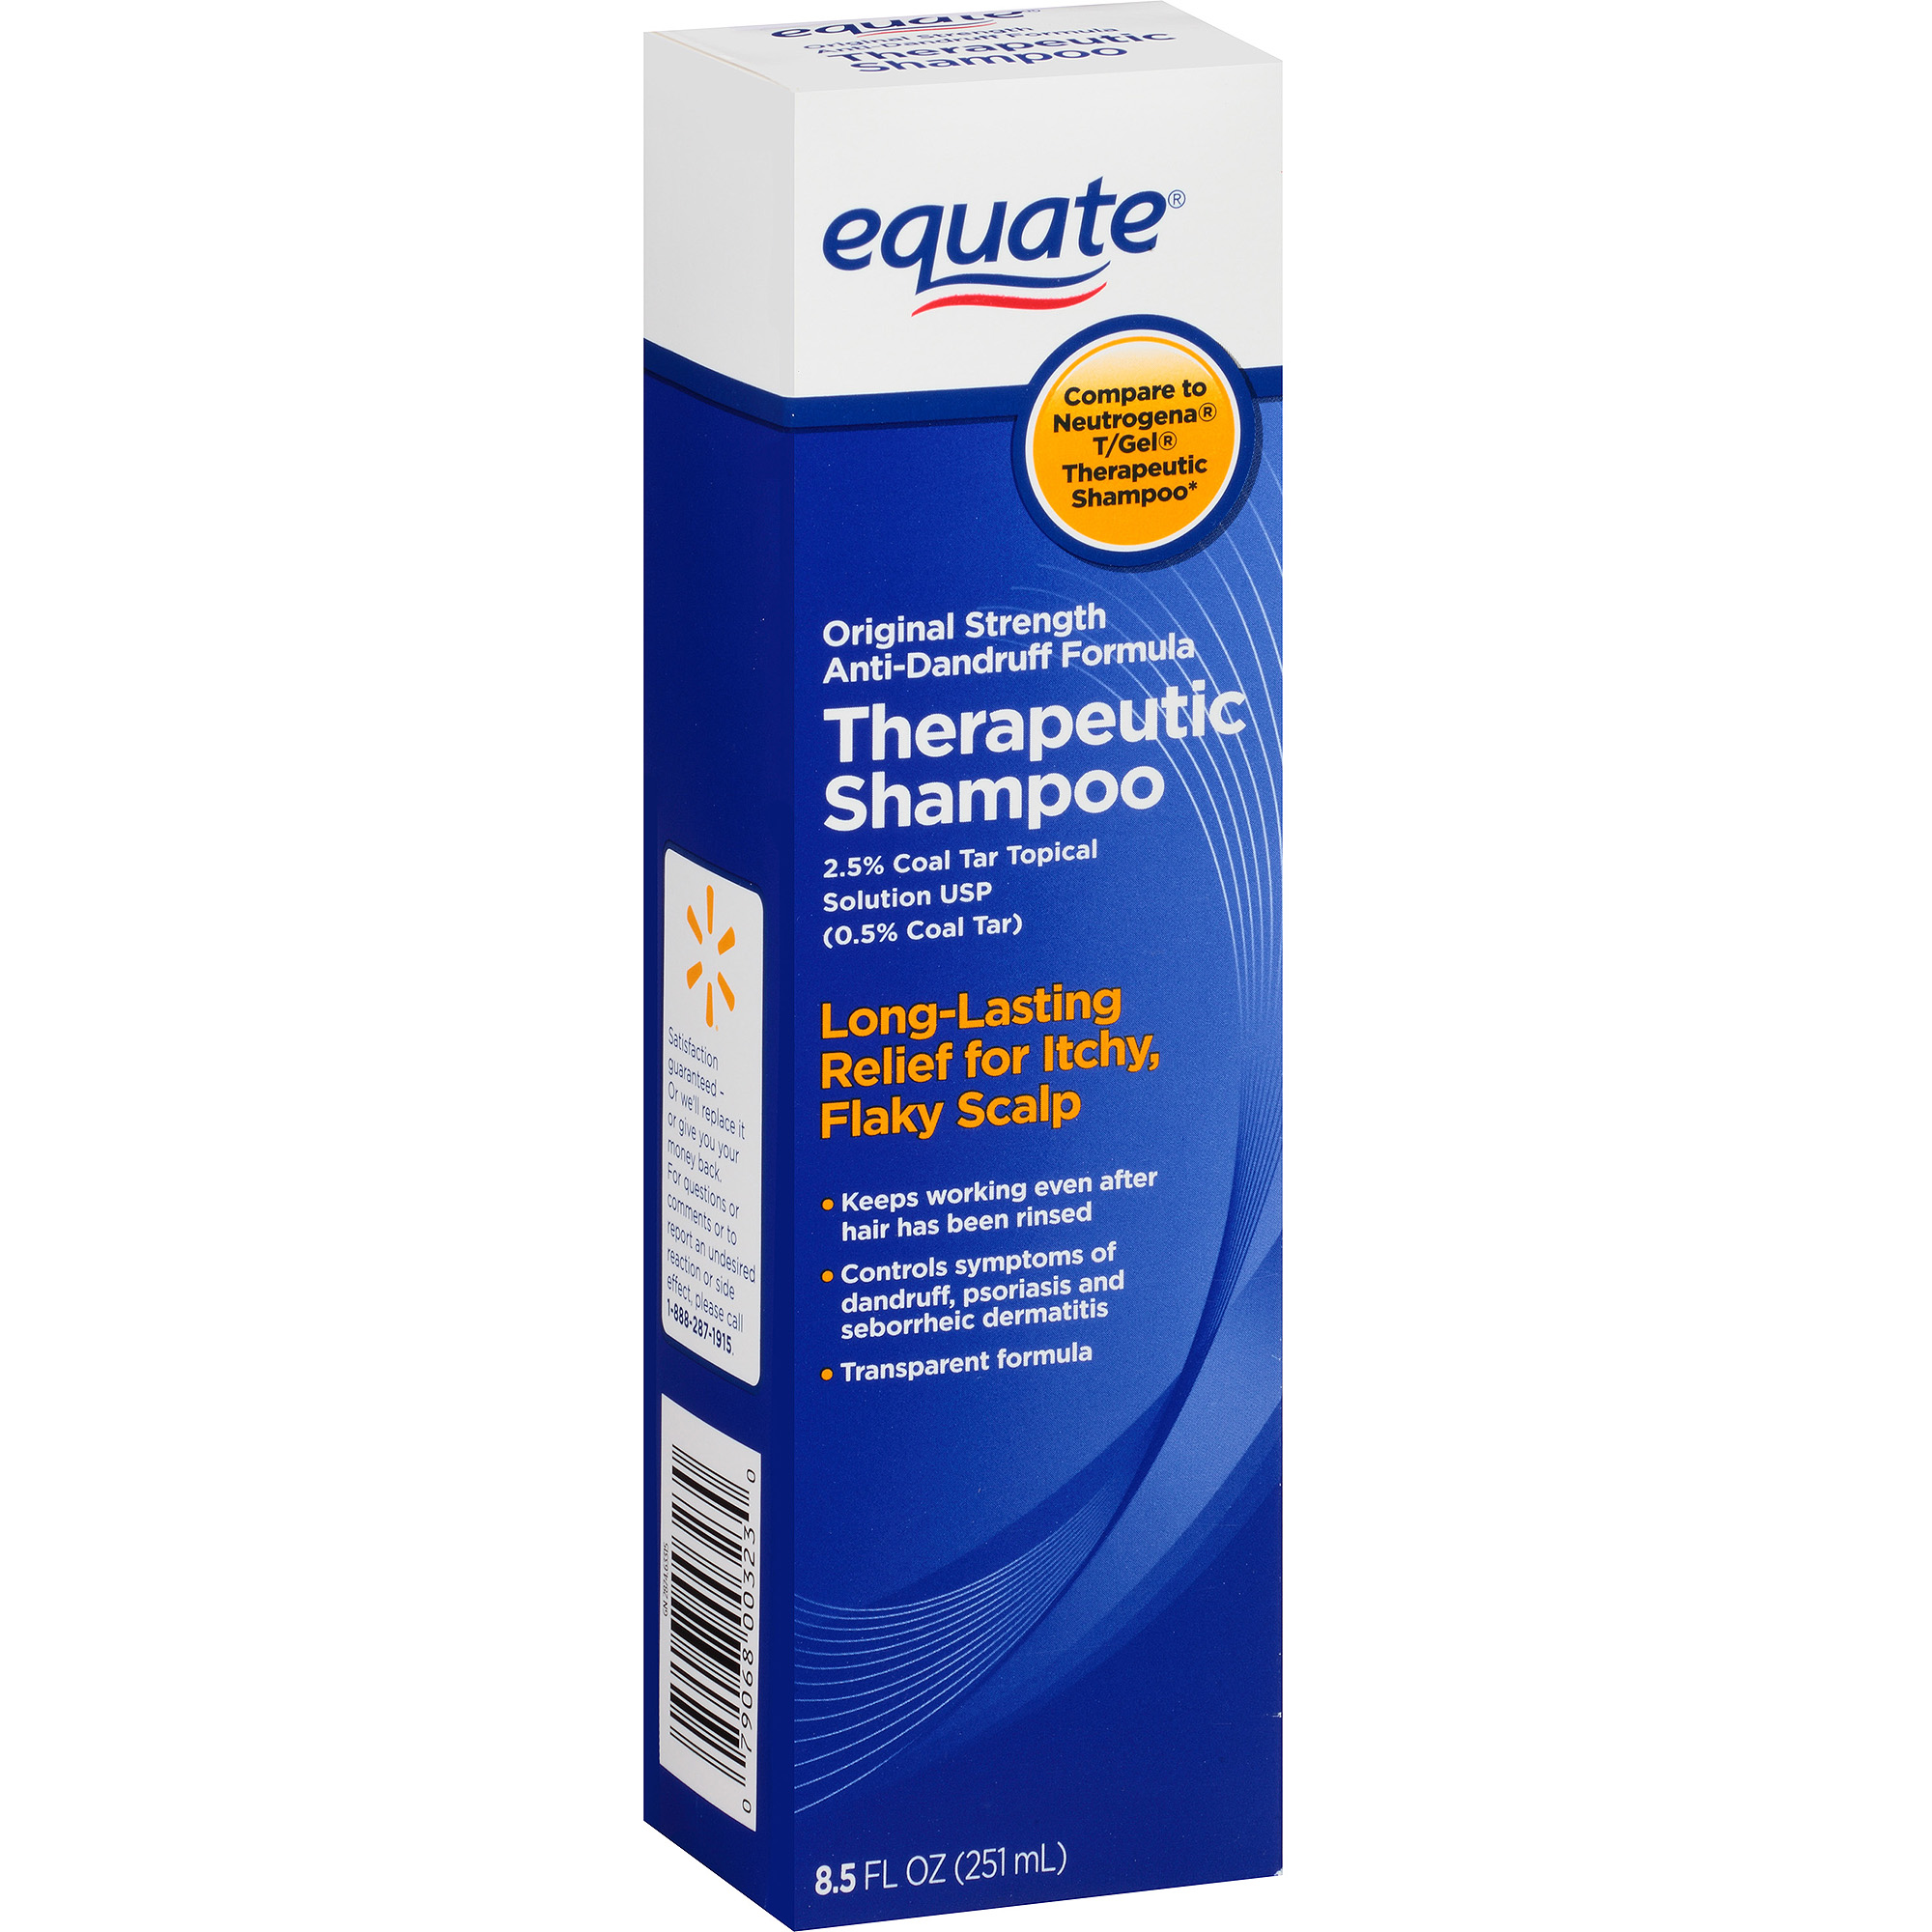 Equate Therapeutic Shampoo, 8.5 Fl Oz